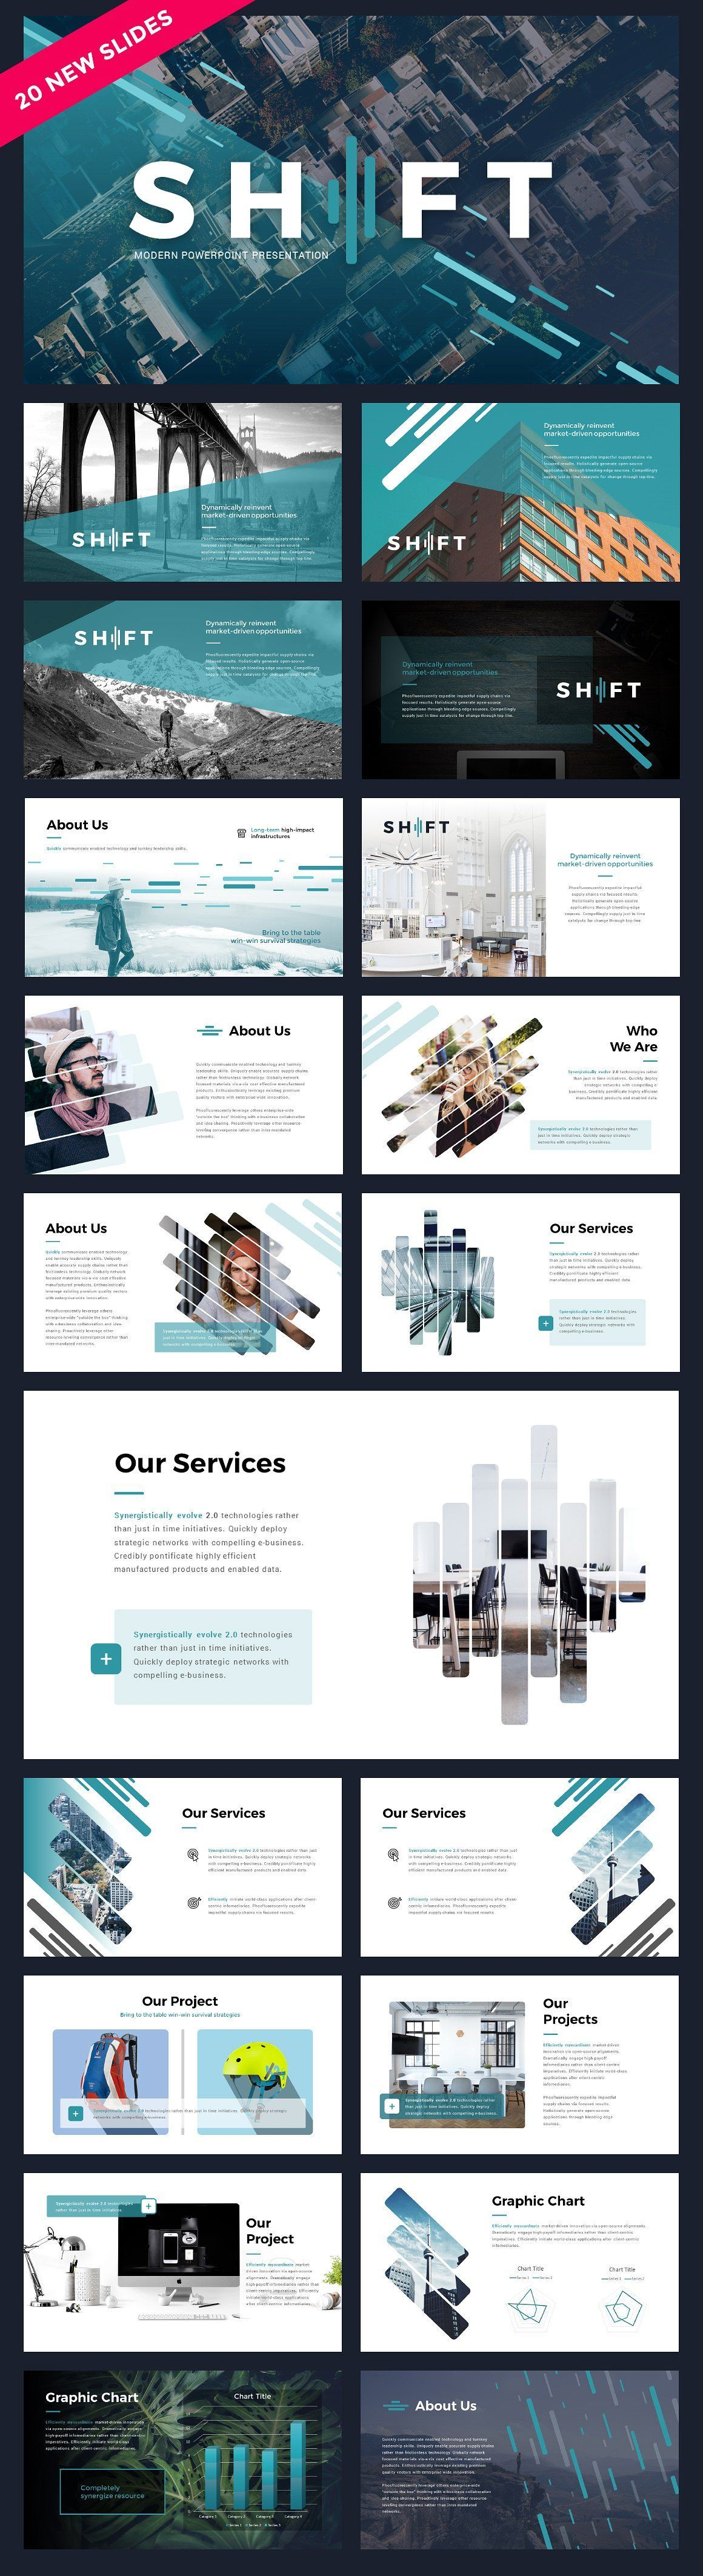 Modern pitch deck slide presentation template for start-ups and other businesses. Features interesting graphics, modern typography, and subtle coloring. #powerpointicon